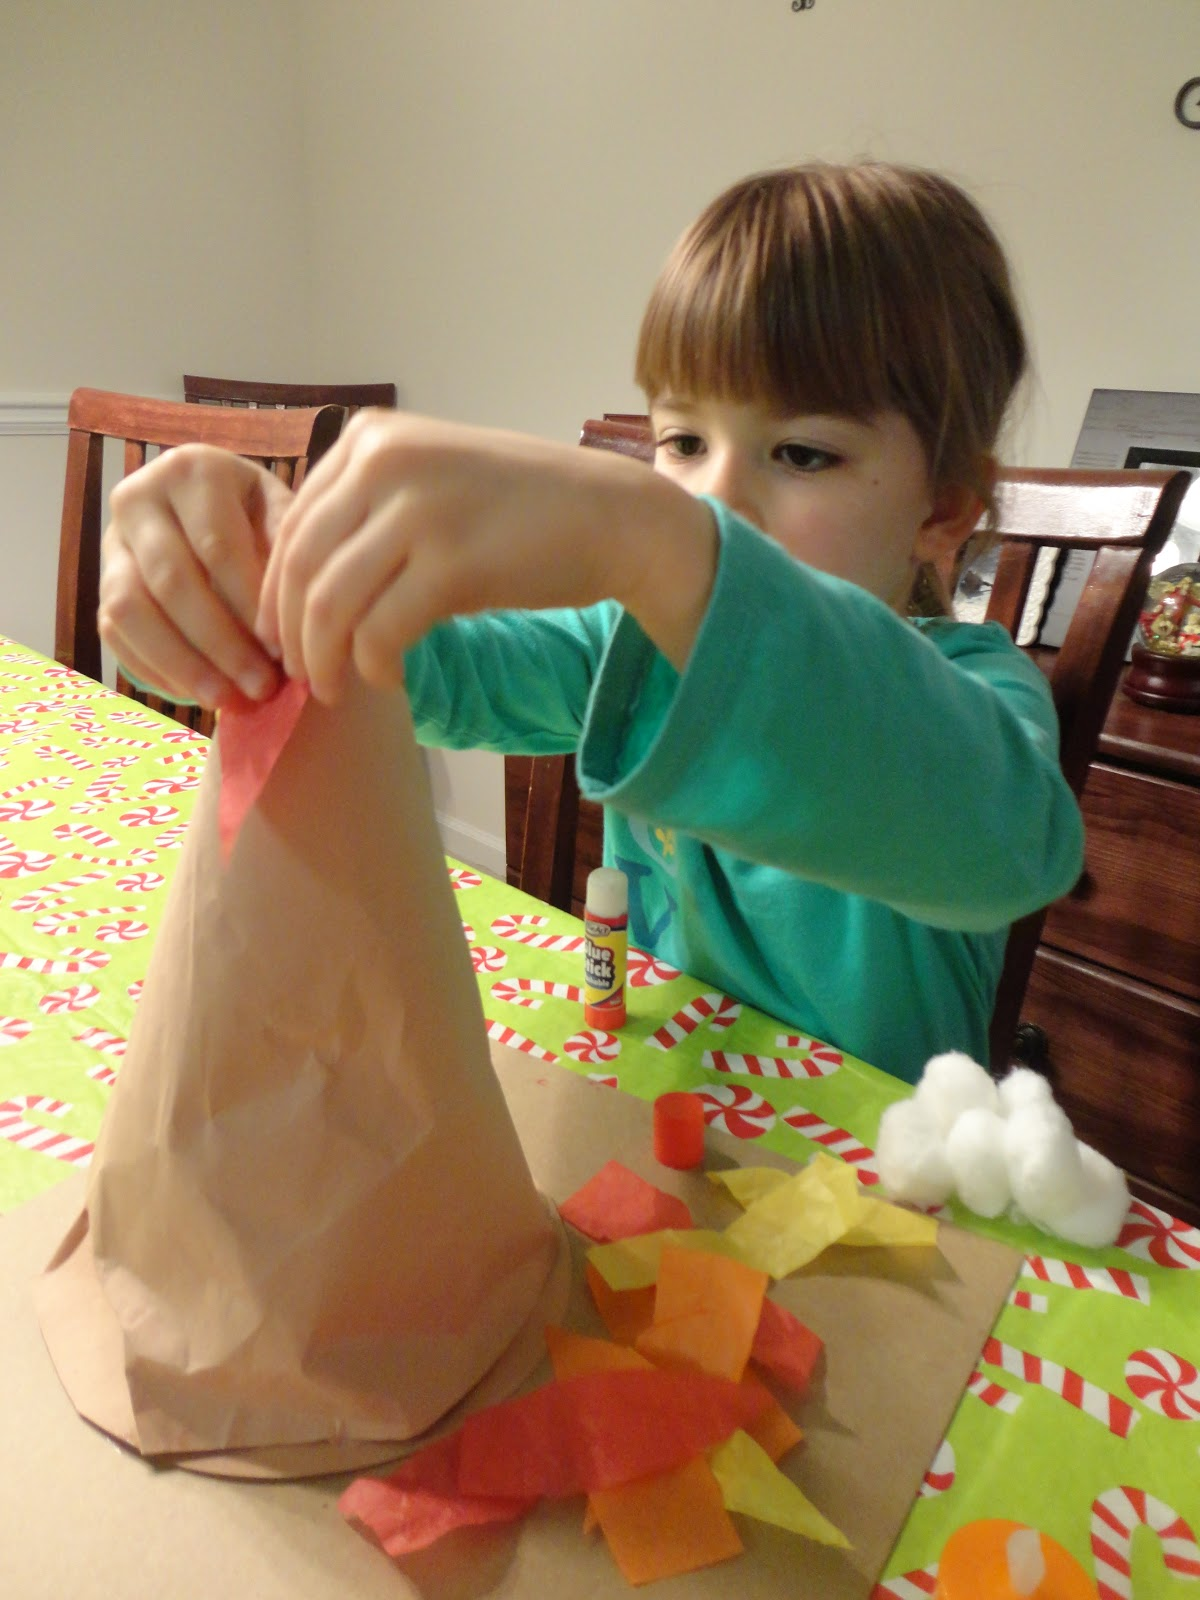 how to make a volcano out of paper and glue